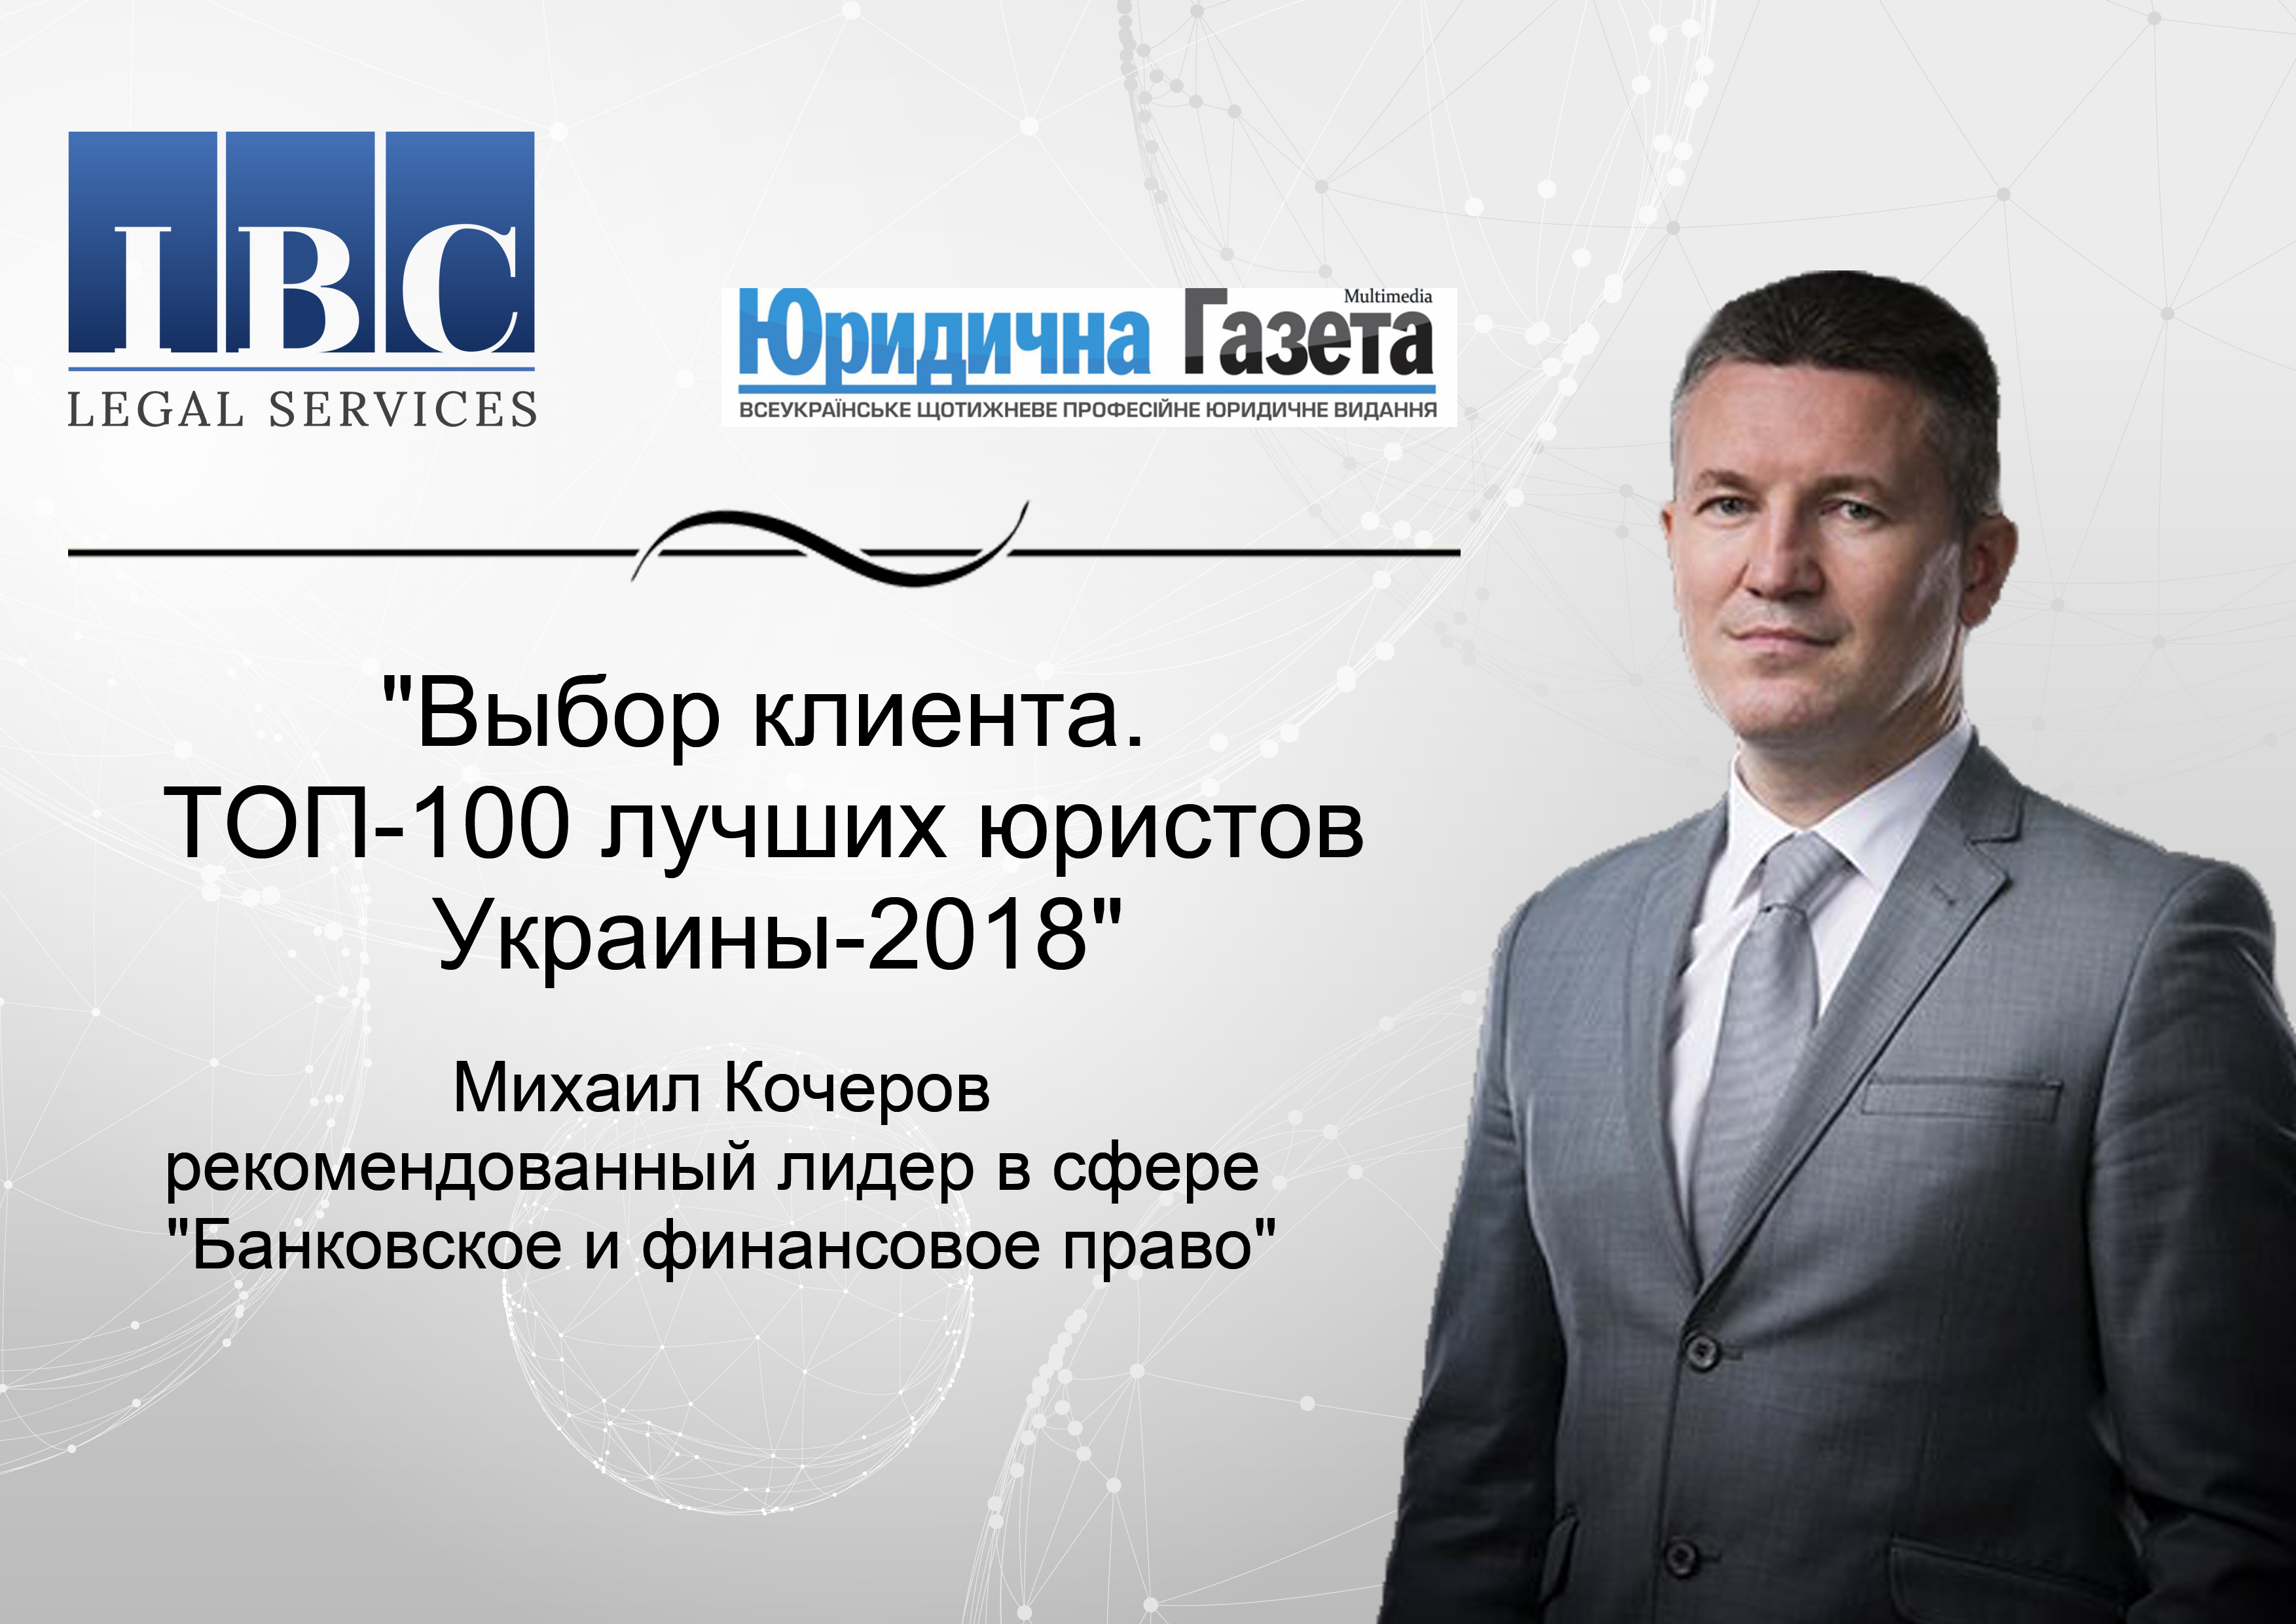 """Customer choice. TOP 100 lawyers of Ukraine - 2018. Practitioner leaders """